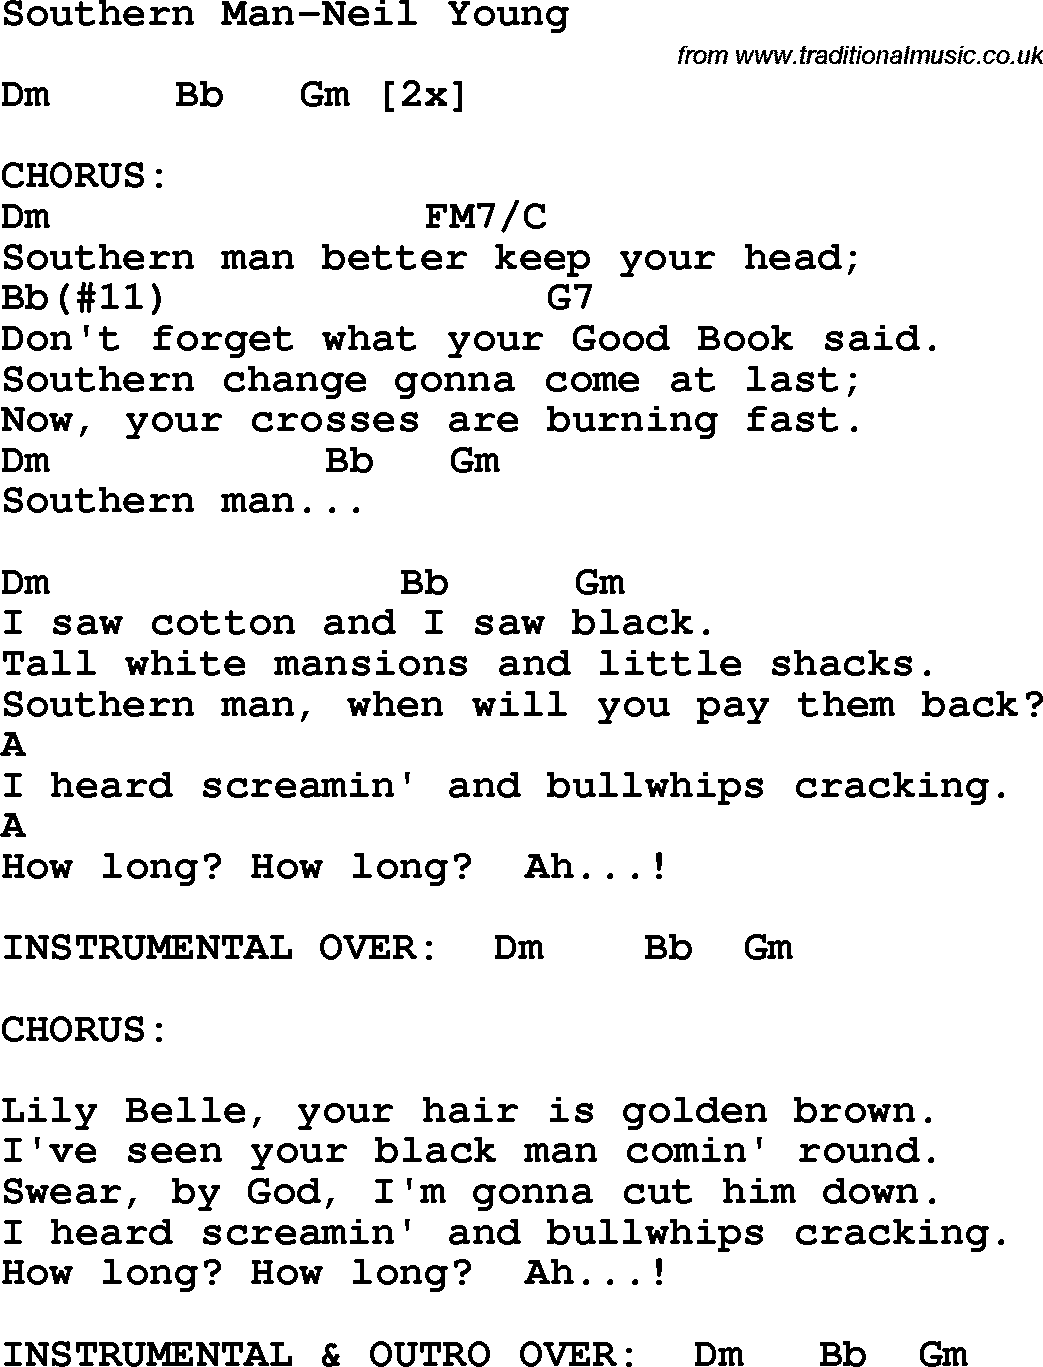 Protest song southern man neil young lyrics and chords protest song southern man neil young lyrics and chords hexwebz Image collections